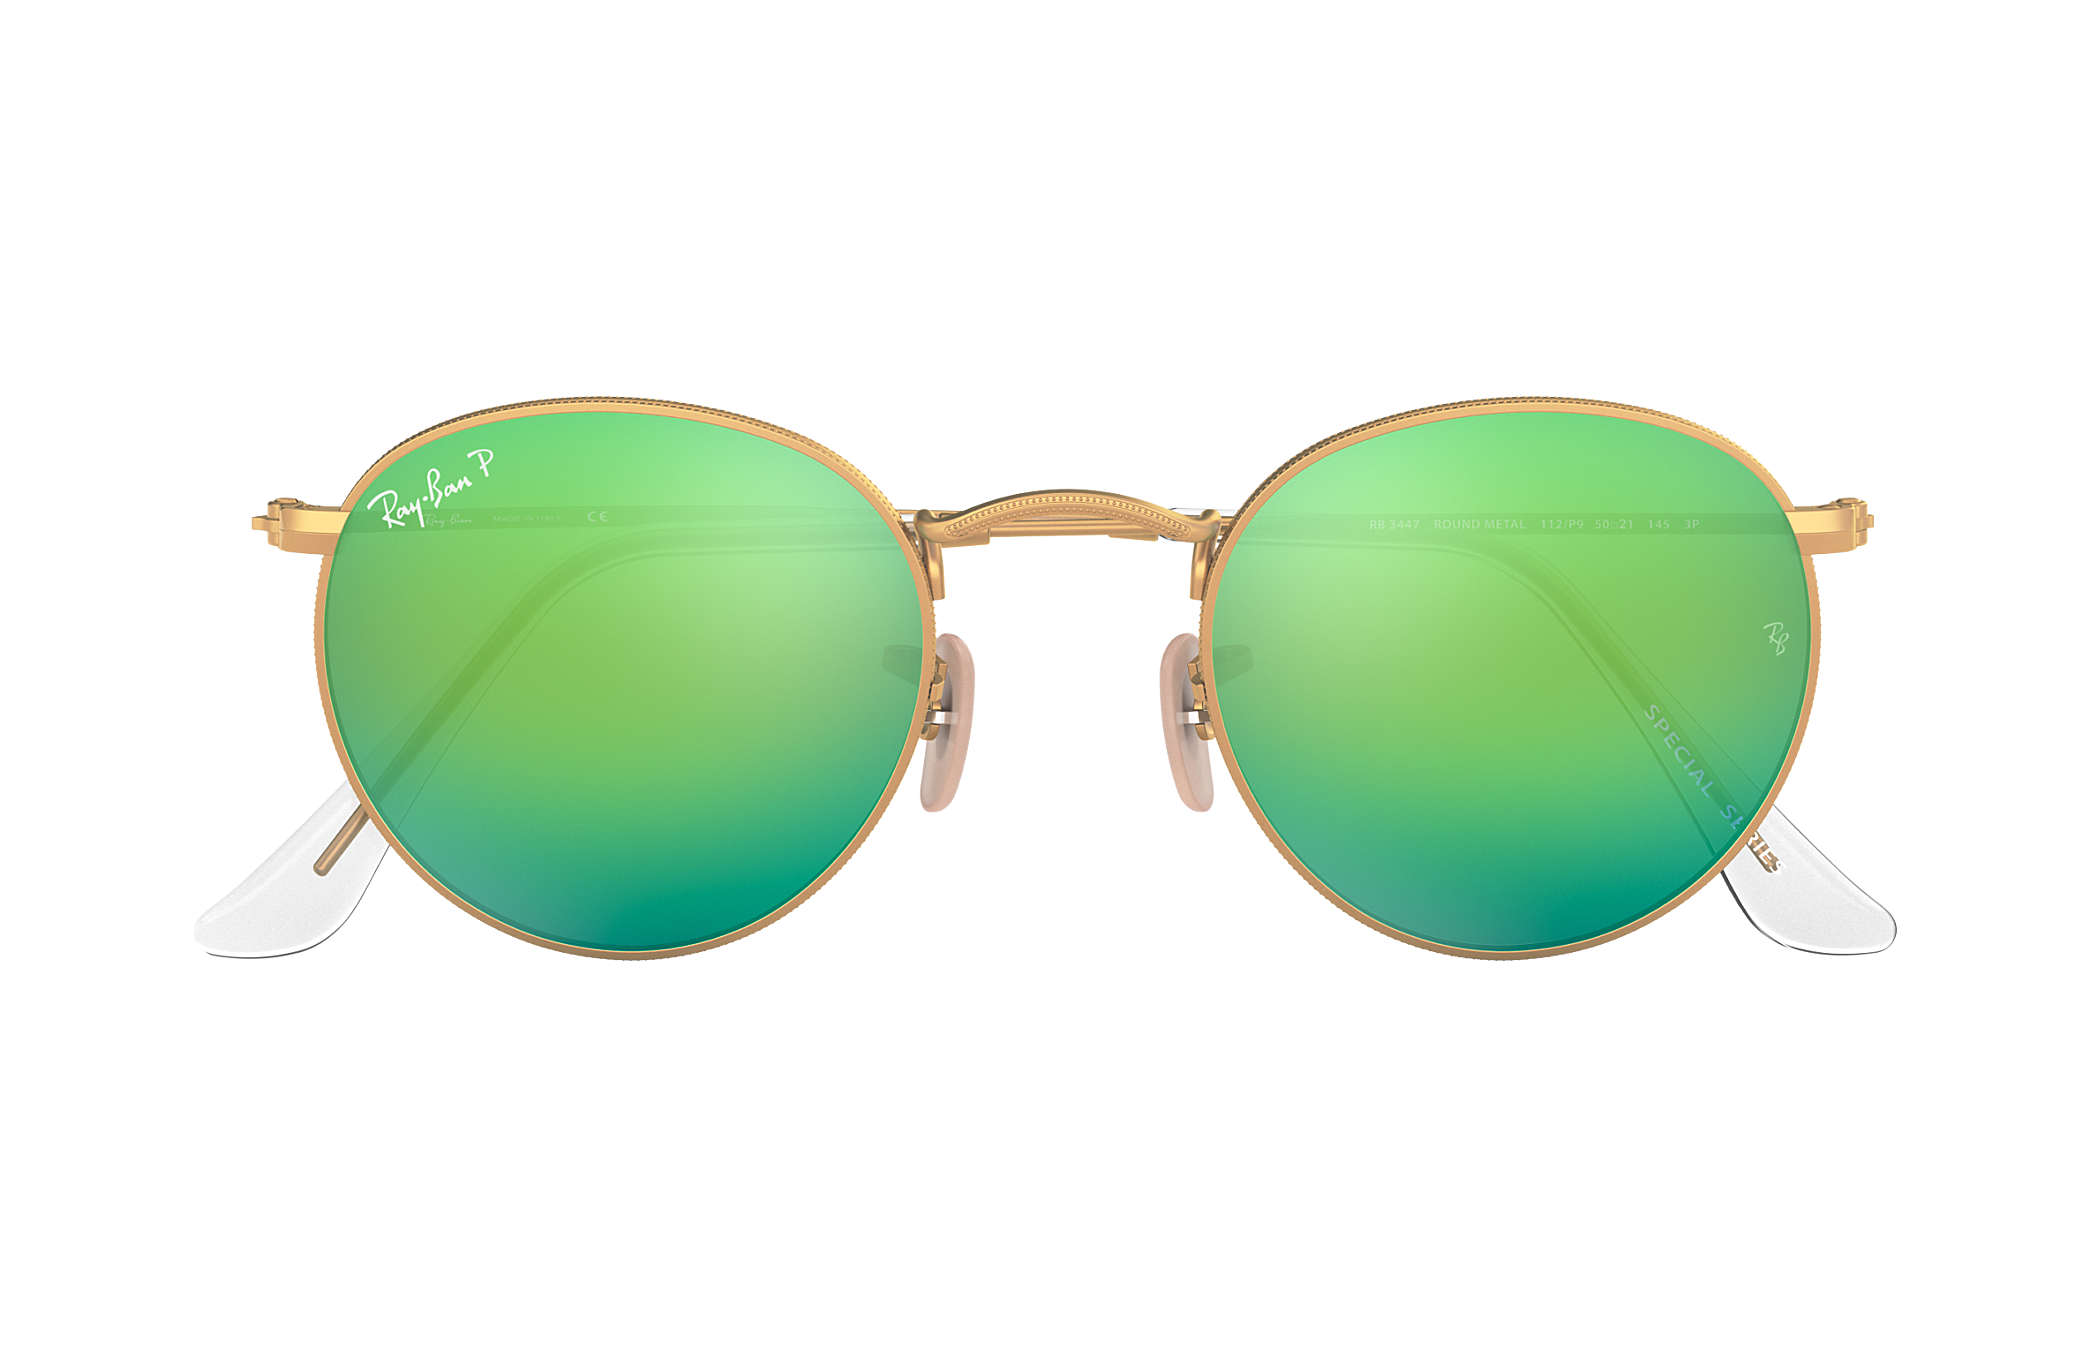 Ray-Ban Round Flash Lenses RB3447 Gold - Metal - Green Polarized ... 8d91ff5971